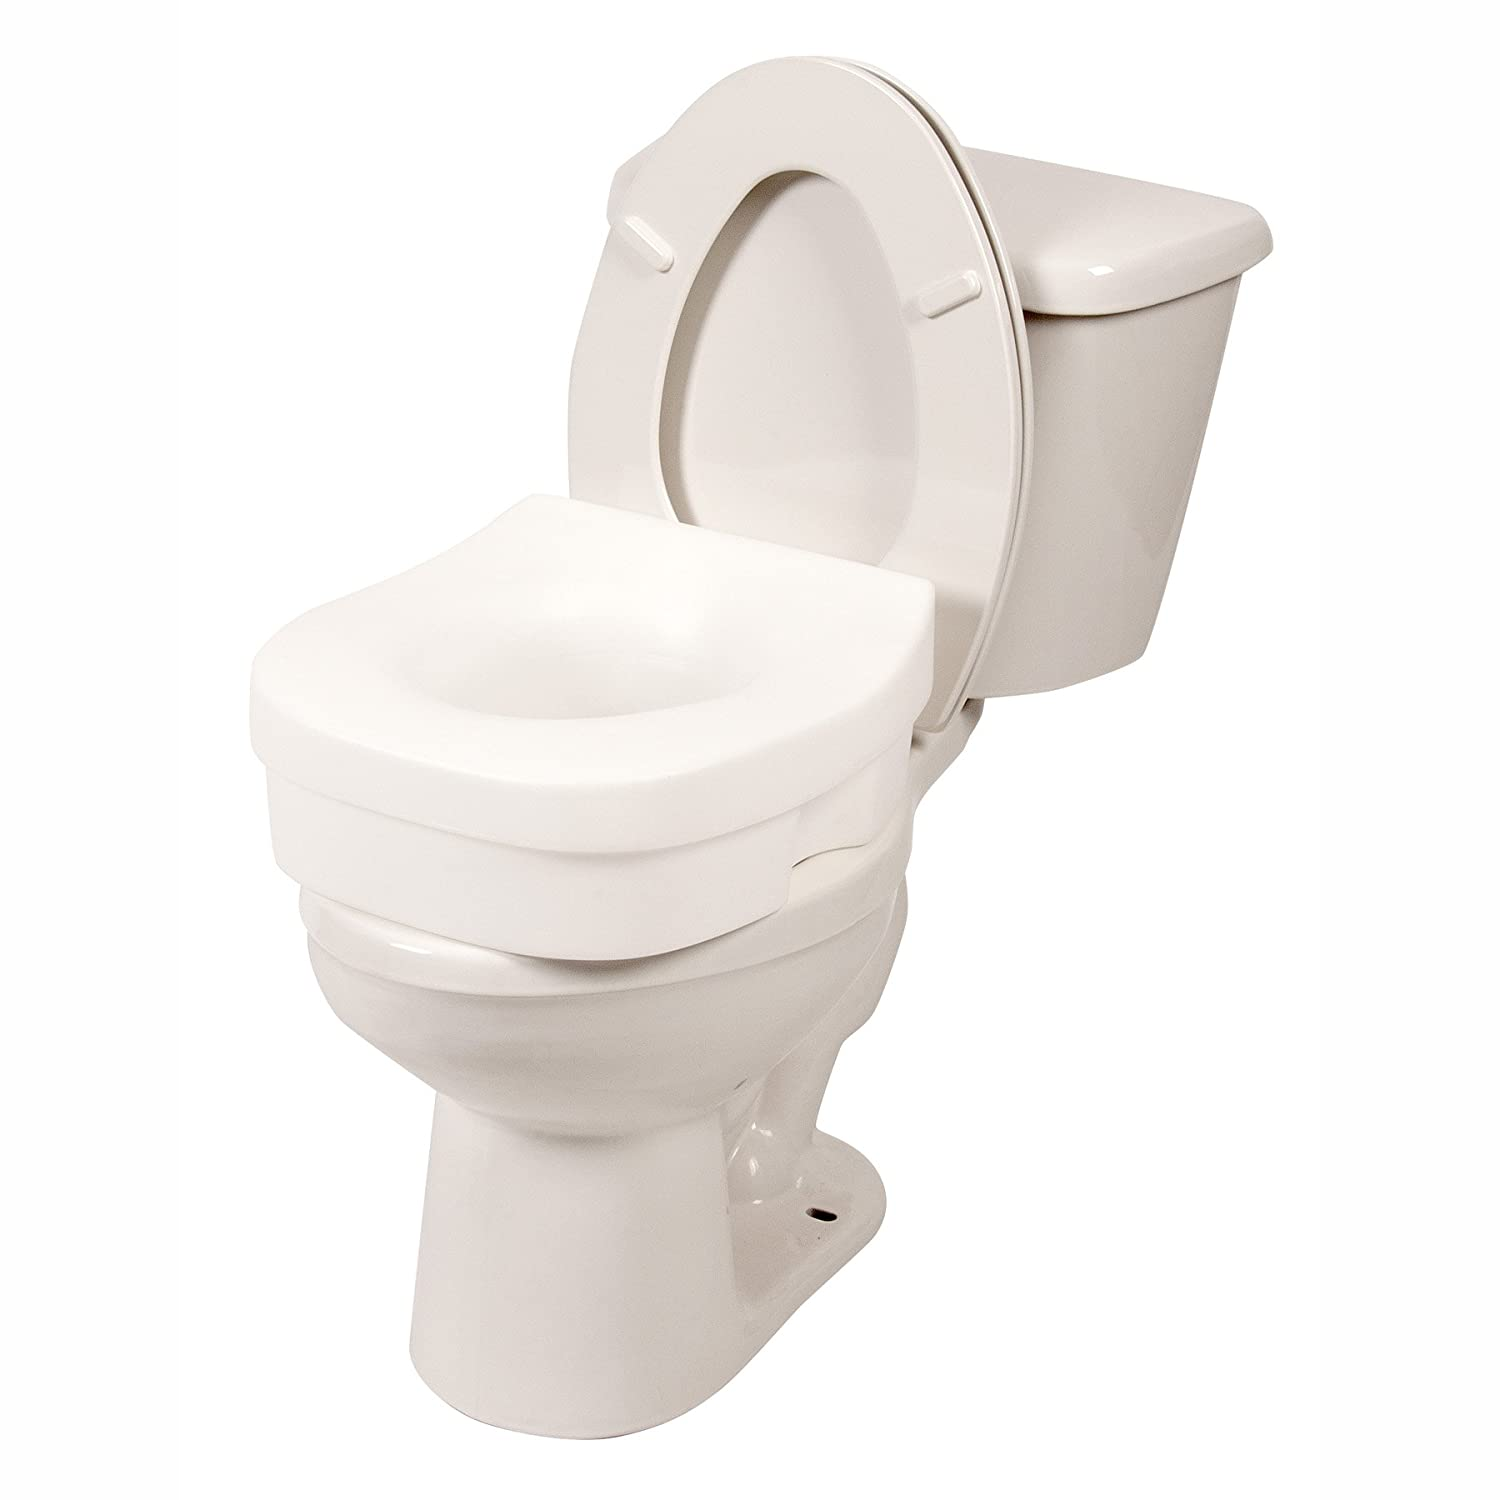 Phenomenal Pcp 5 Toilet Seat Riser With Discreet Traveling Carry Bag Contour Molded Elevated Safety Seat Commode Riser Caraccident5 Cool Chair Designs And Ideas Caraccident5Info